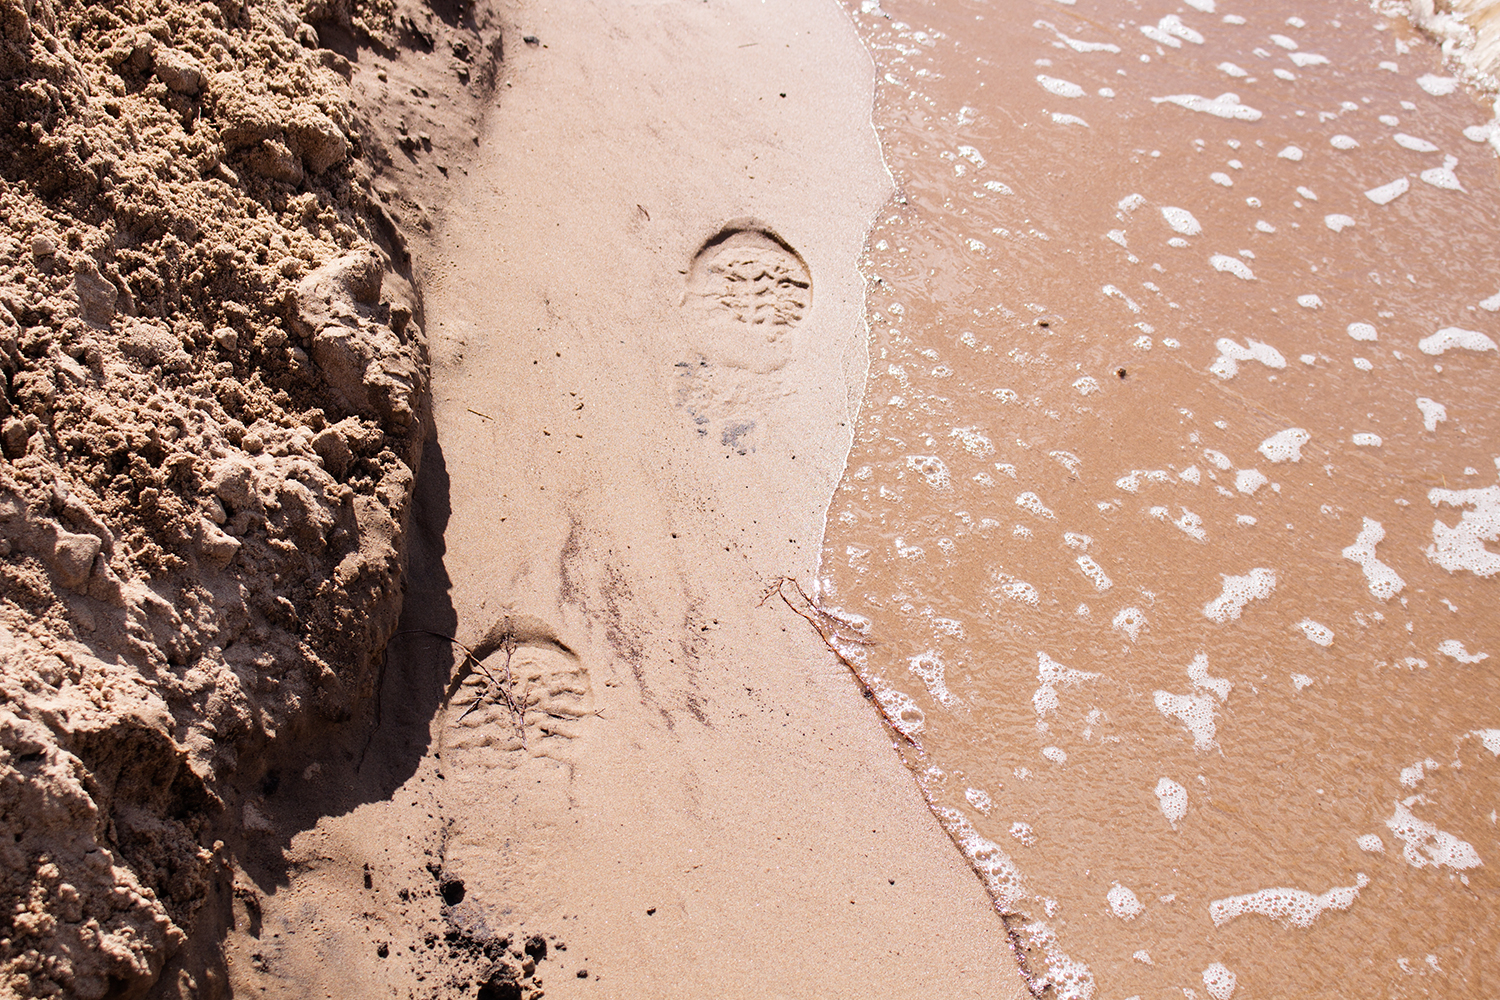 Footprints in Formby